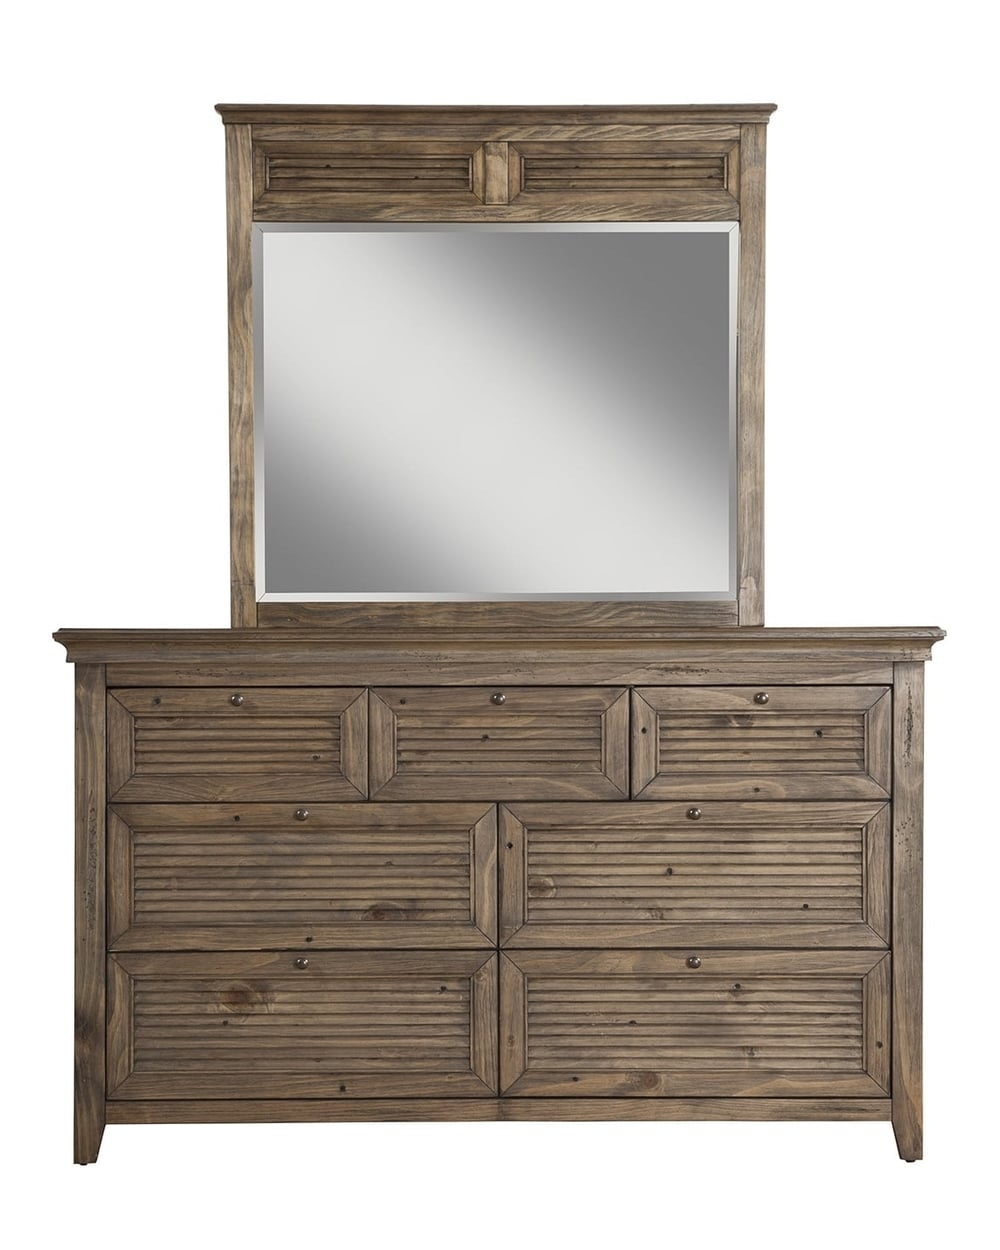 Remington 7 Drawer Dresser w/ Mirror